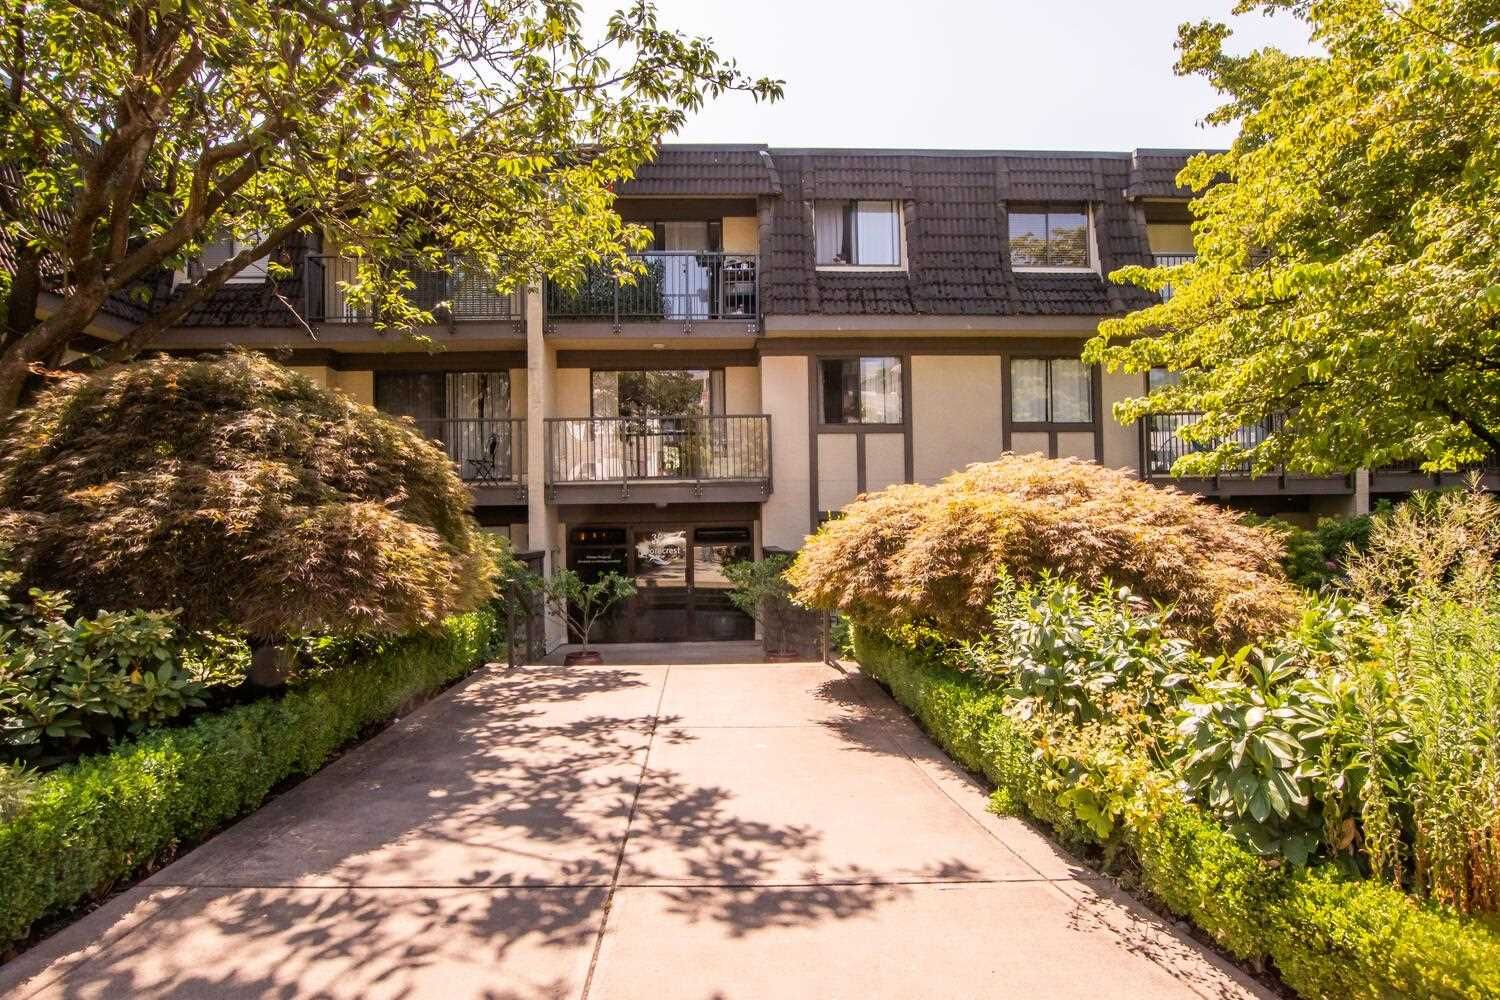 """Main Photo: 105 307 W 2ND Street in North Vancouver: Lower Lonsdale Condo for sale in """"Shorecrest"""" : MLS®# R2605730"""